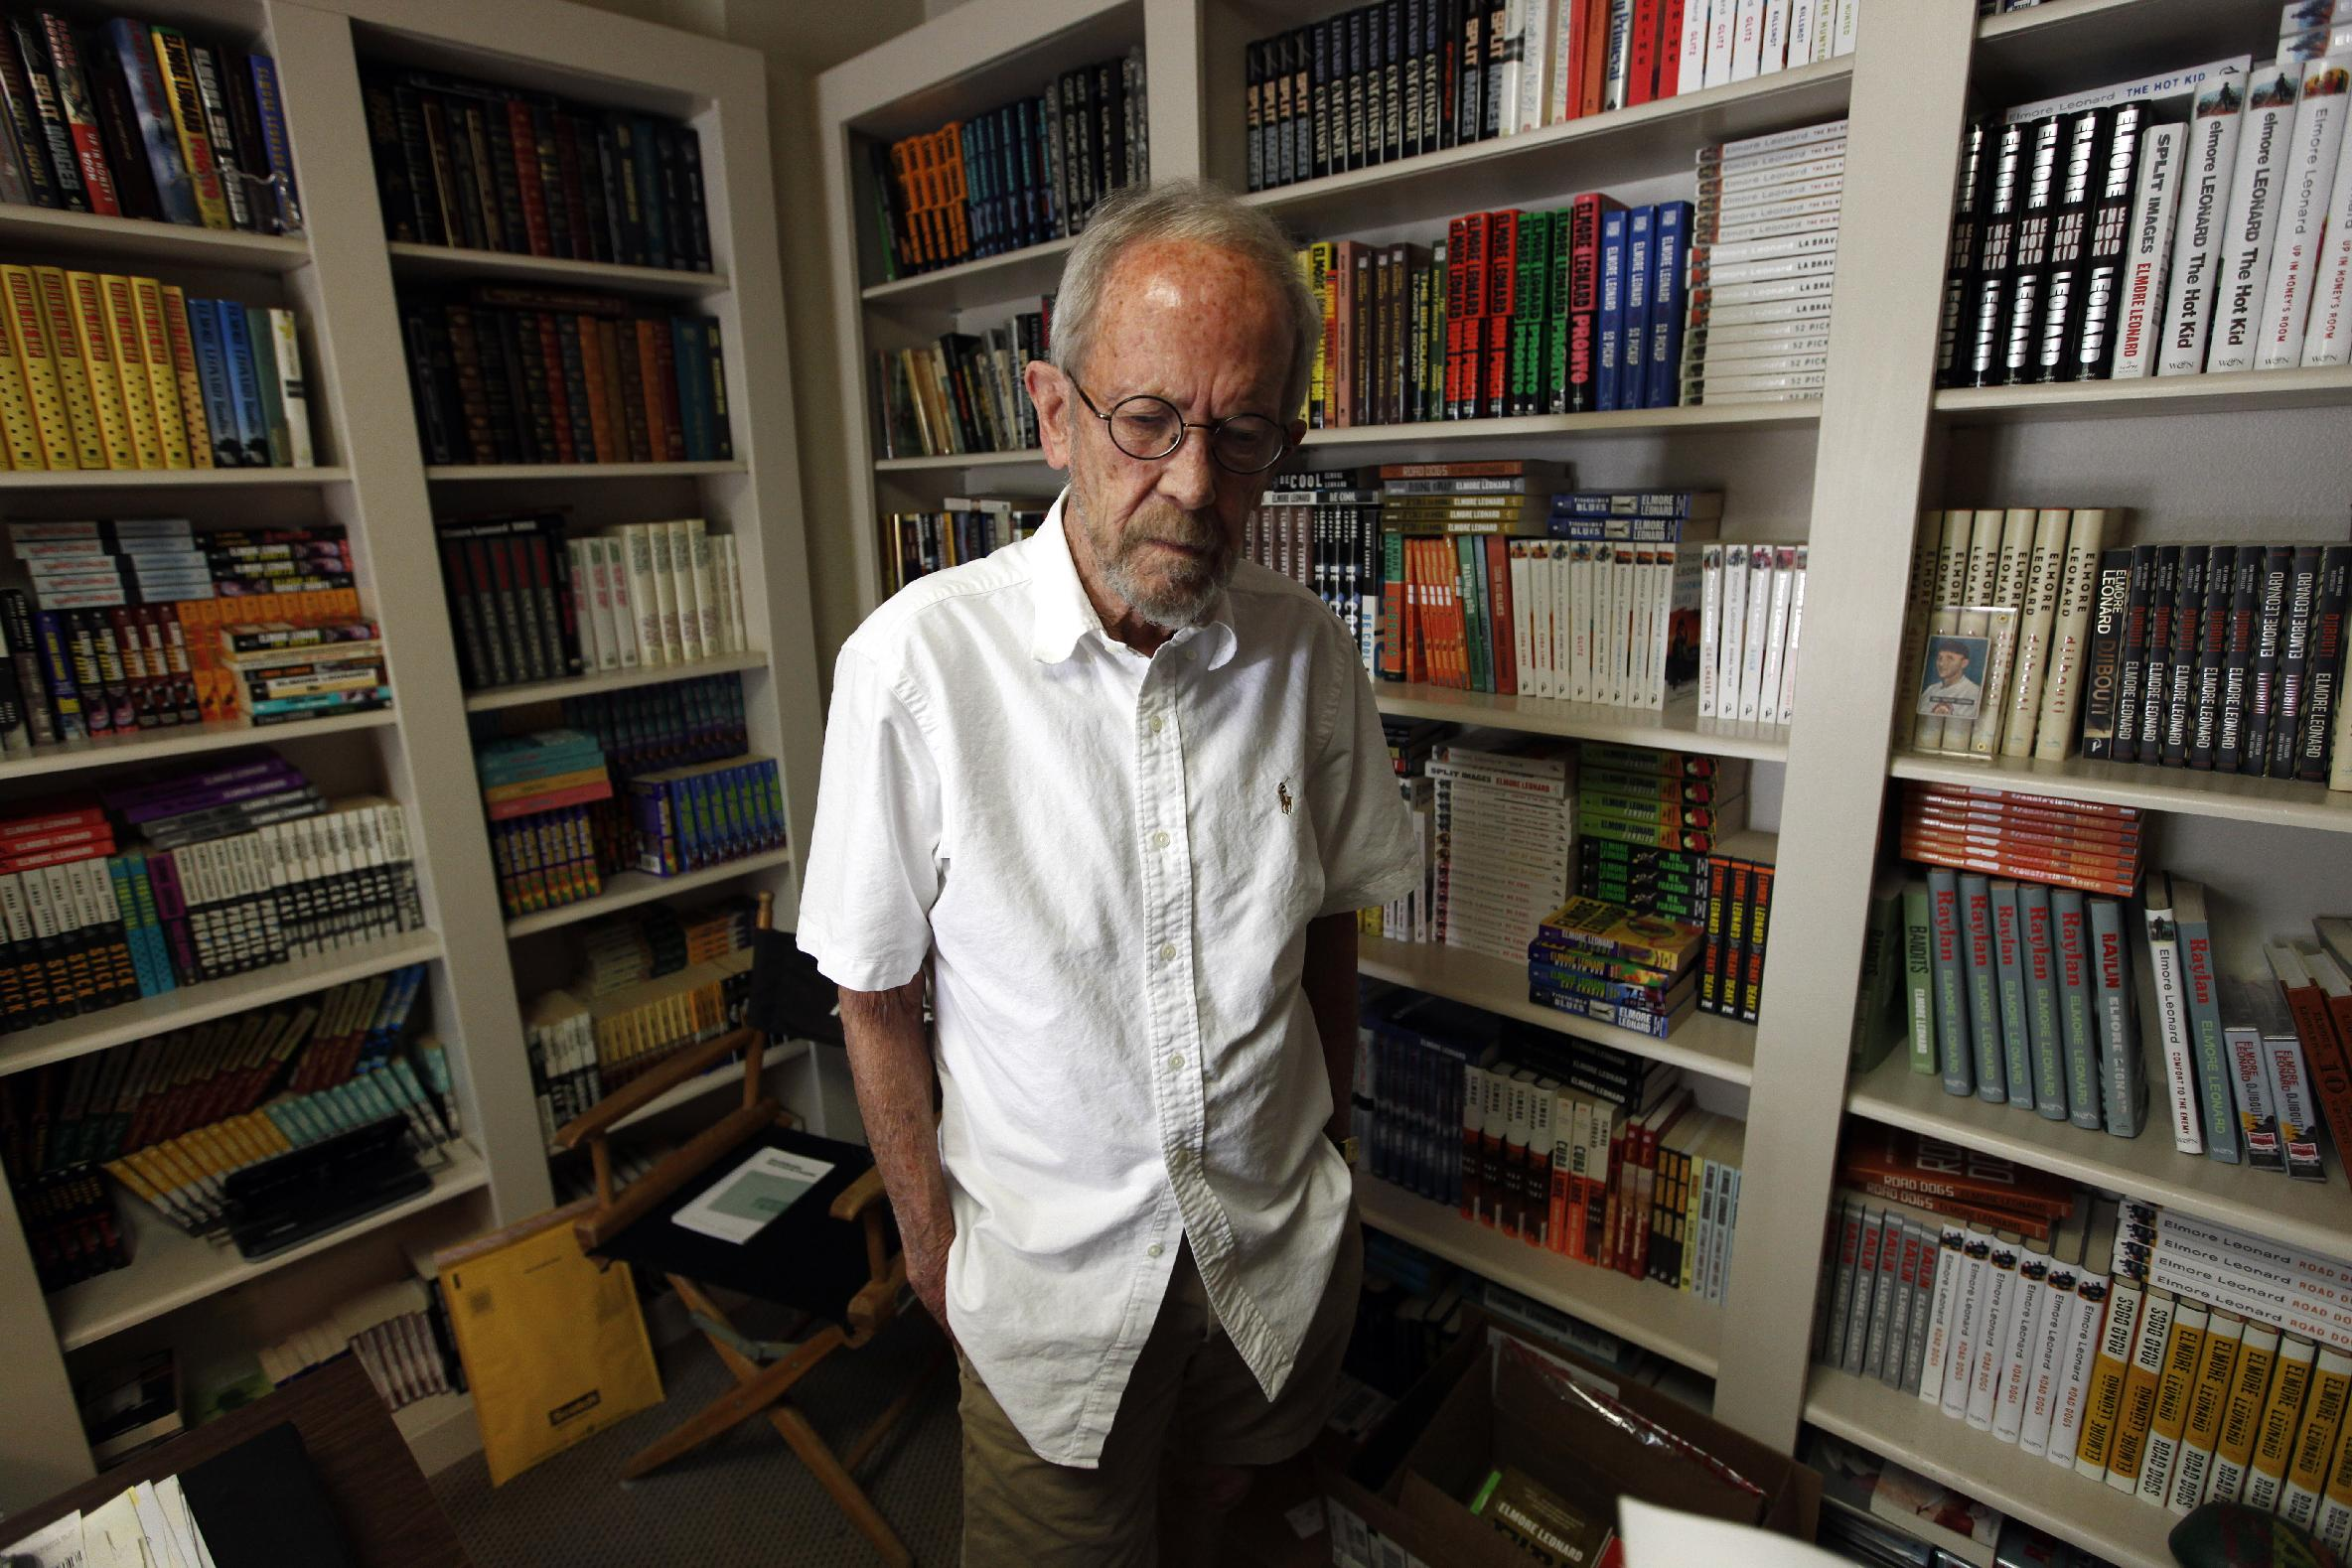 Elmore Leonard. Photograph by Paul Sancya, Associated Press.